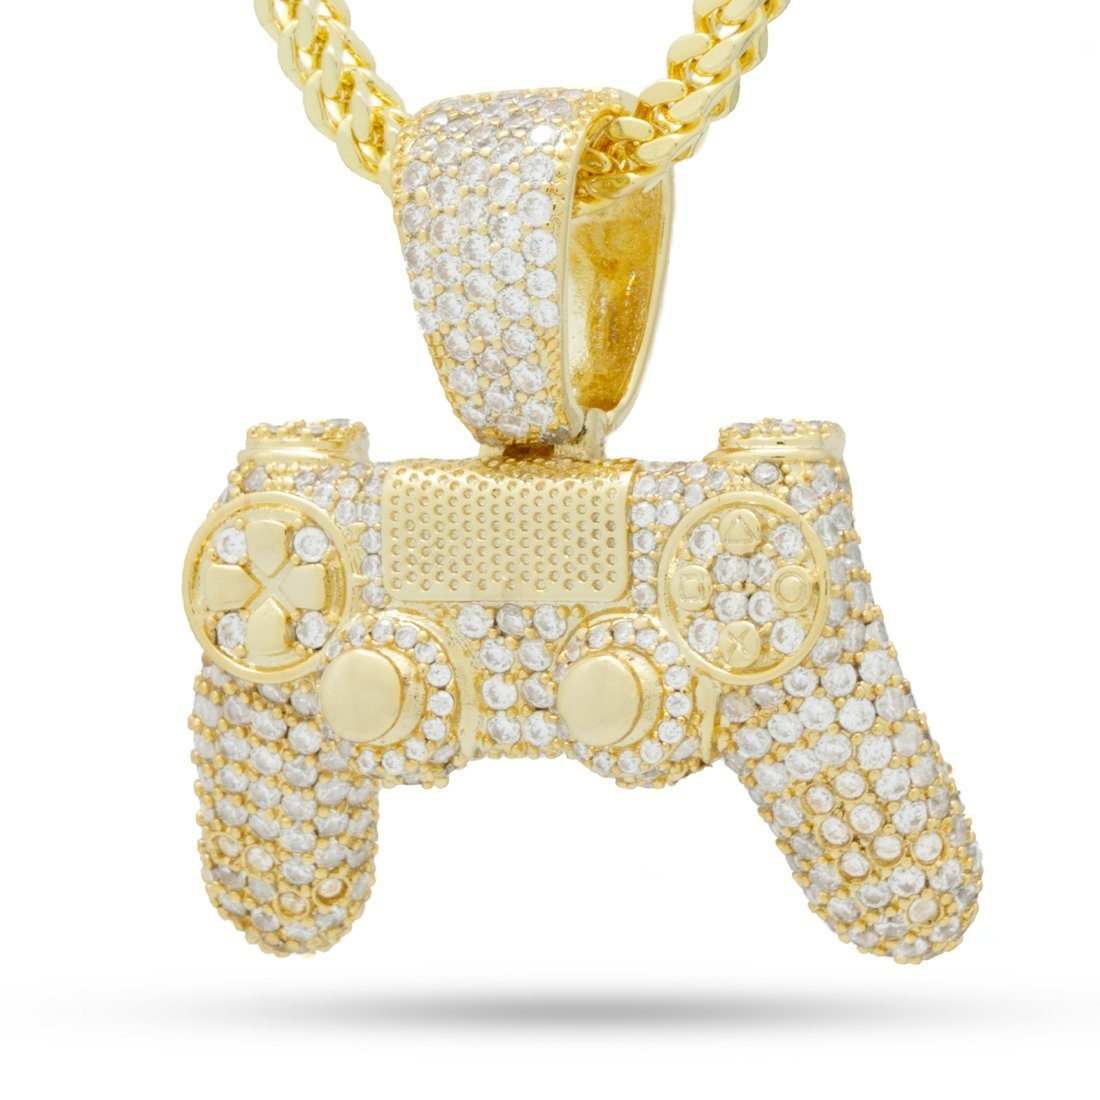 Image of Inspired by PlayStation - The Iced Out Gold Classic Controller Necklace